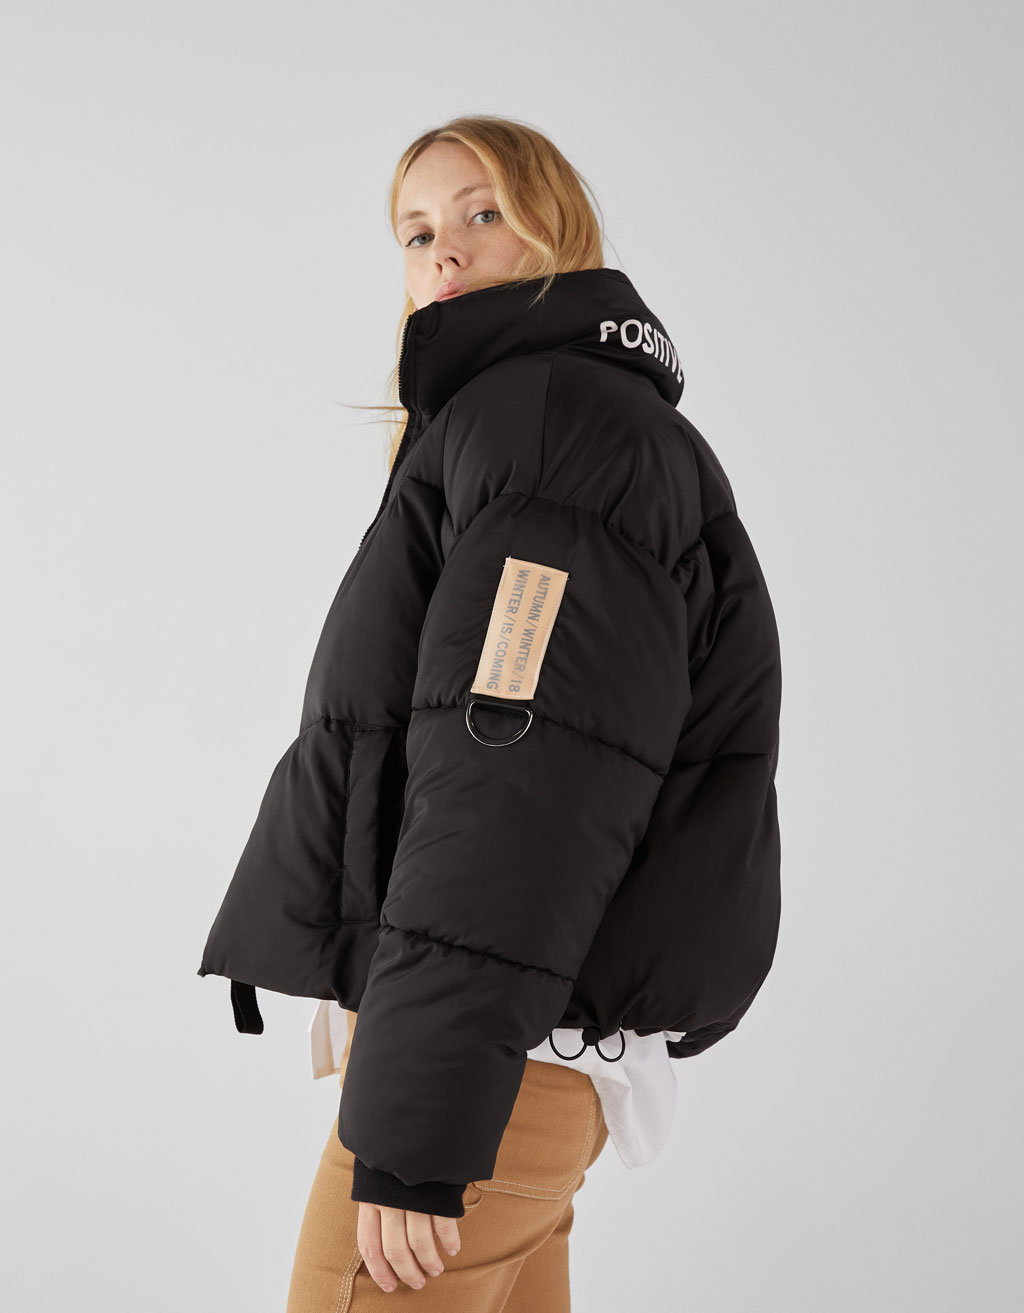 Puffy oversize with text on the neck